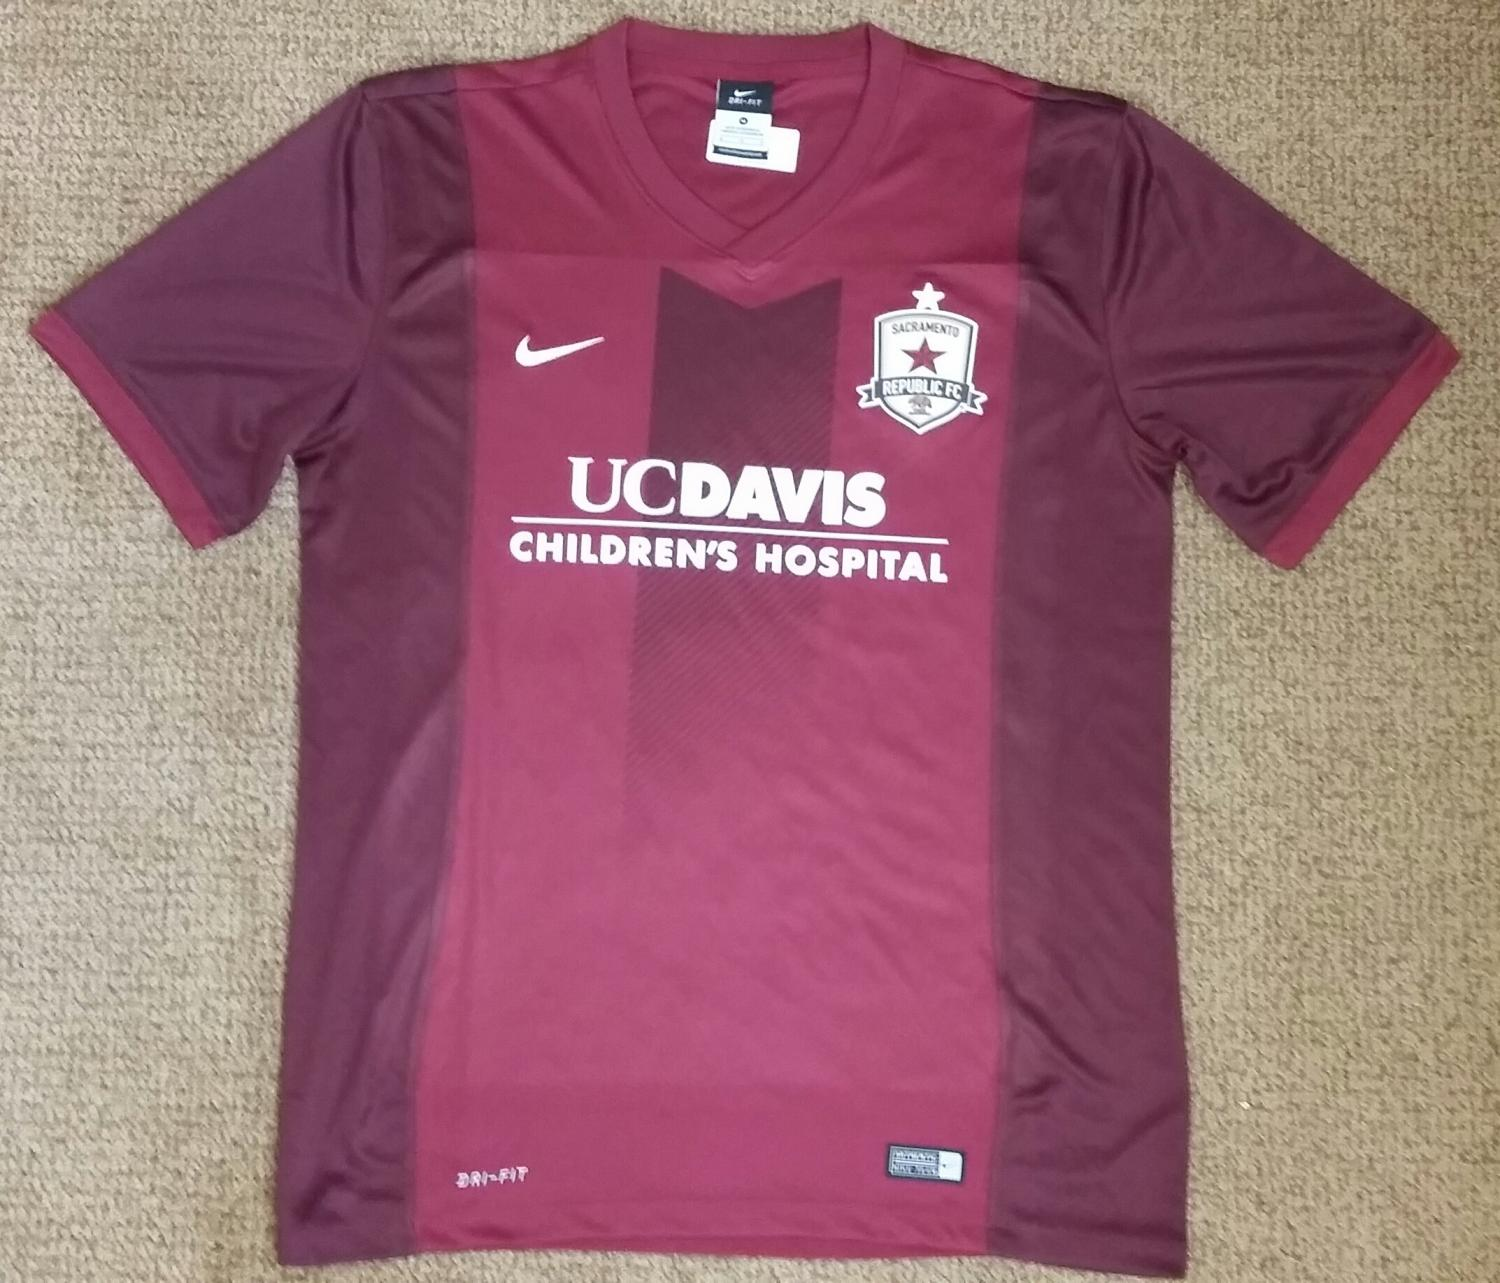 Sacramento republic fc home football shirt 2016 added on for Custom t shirts sacramento